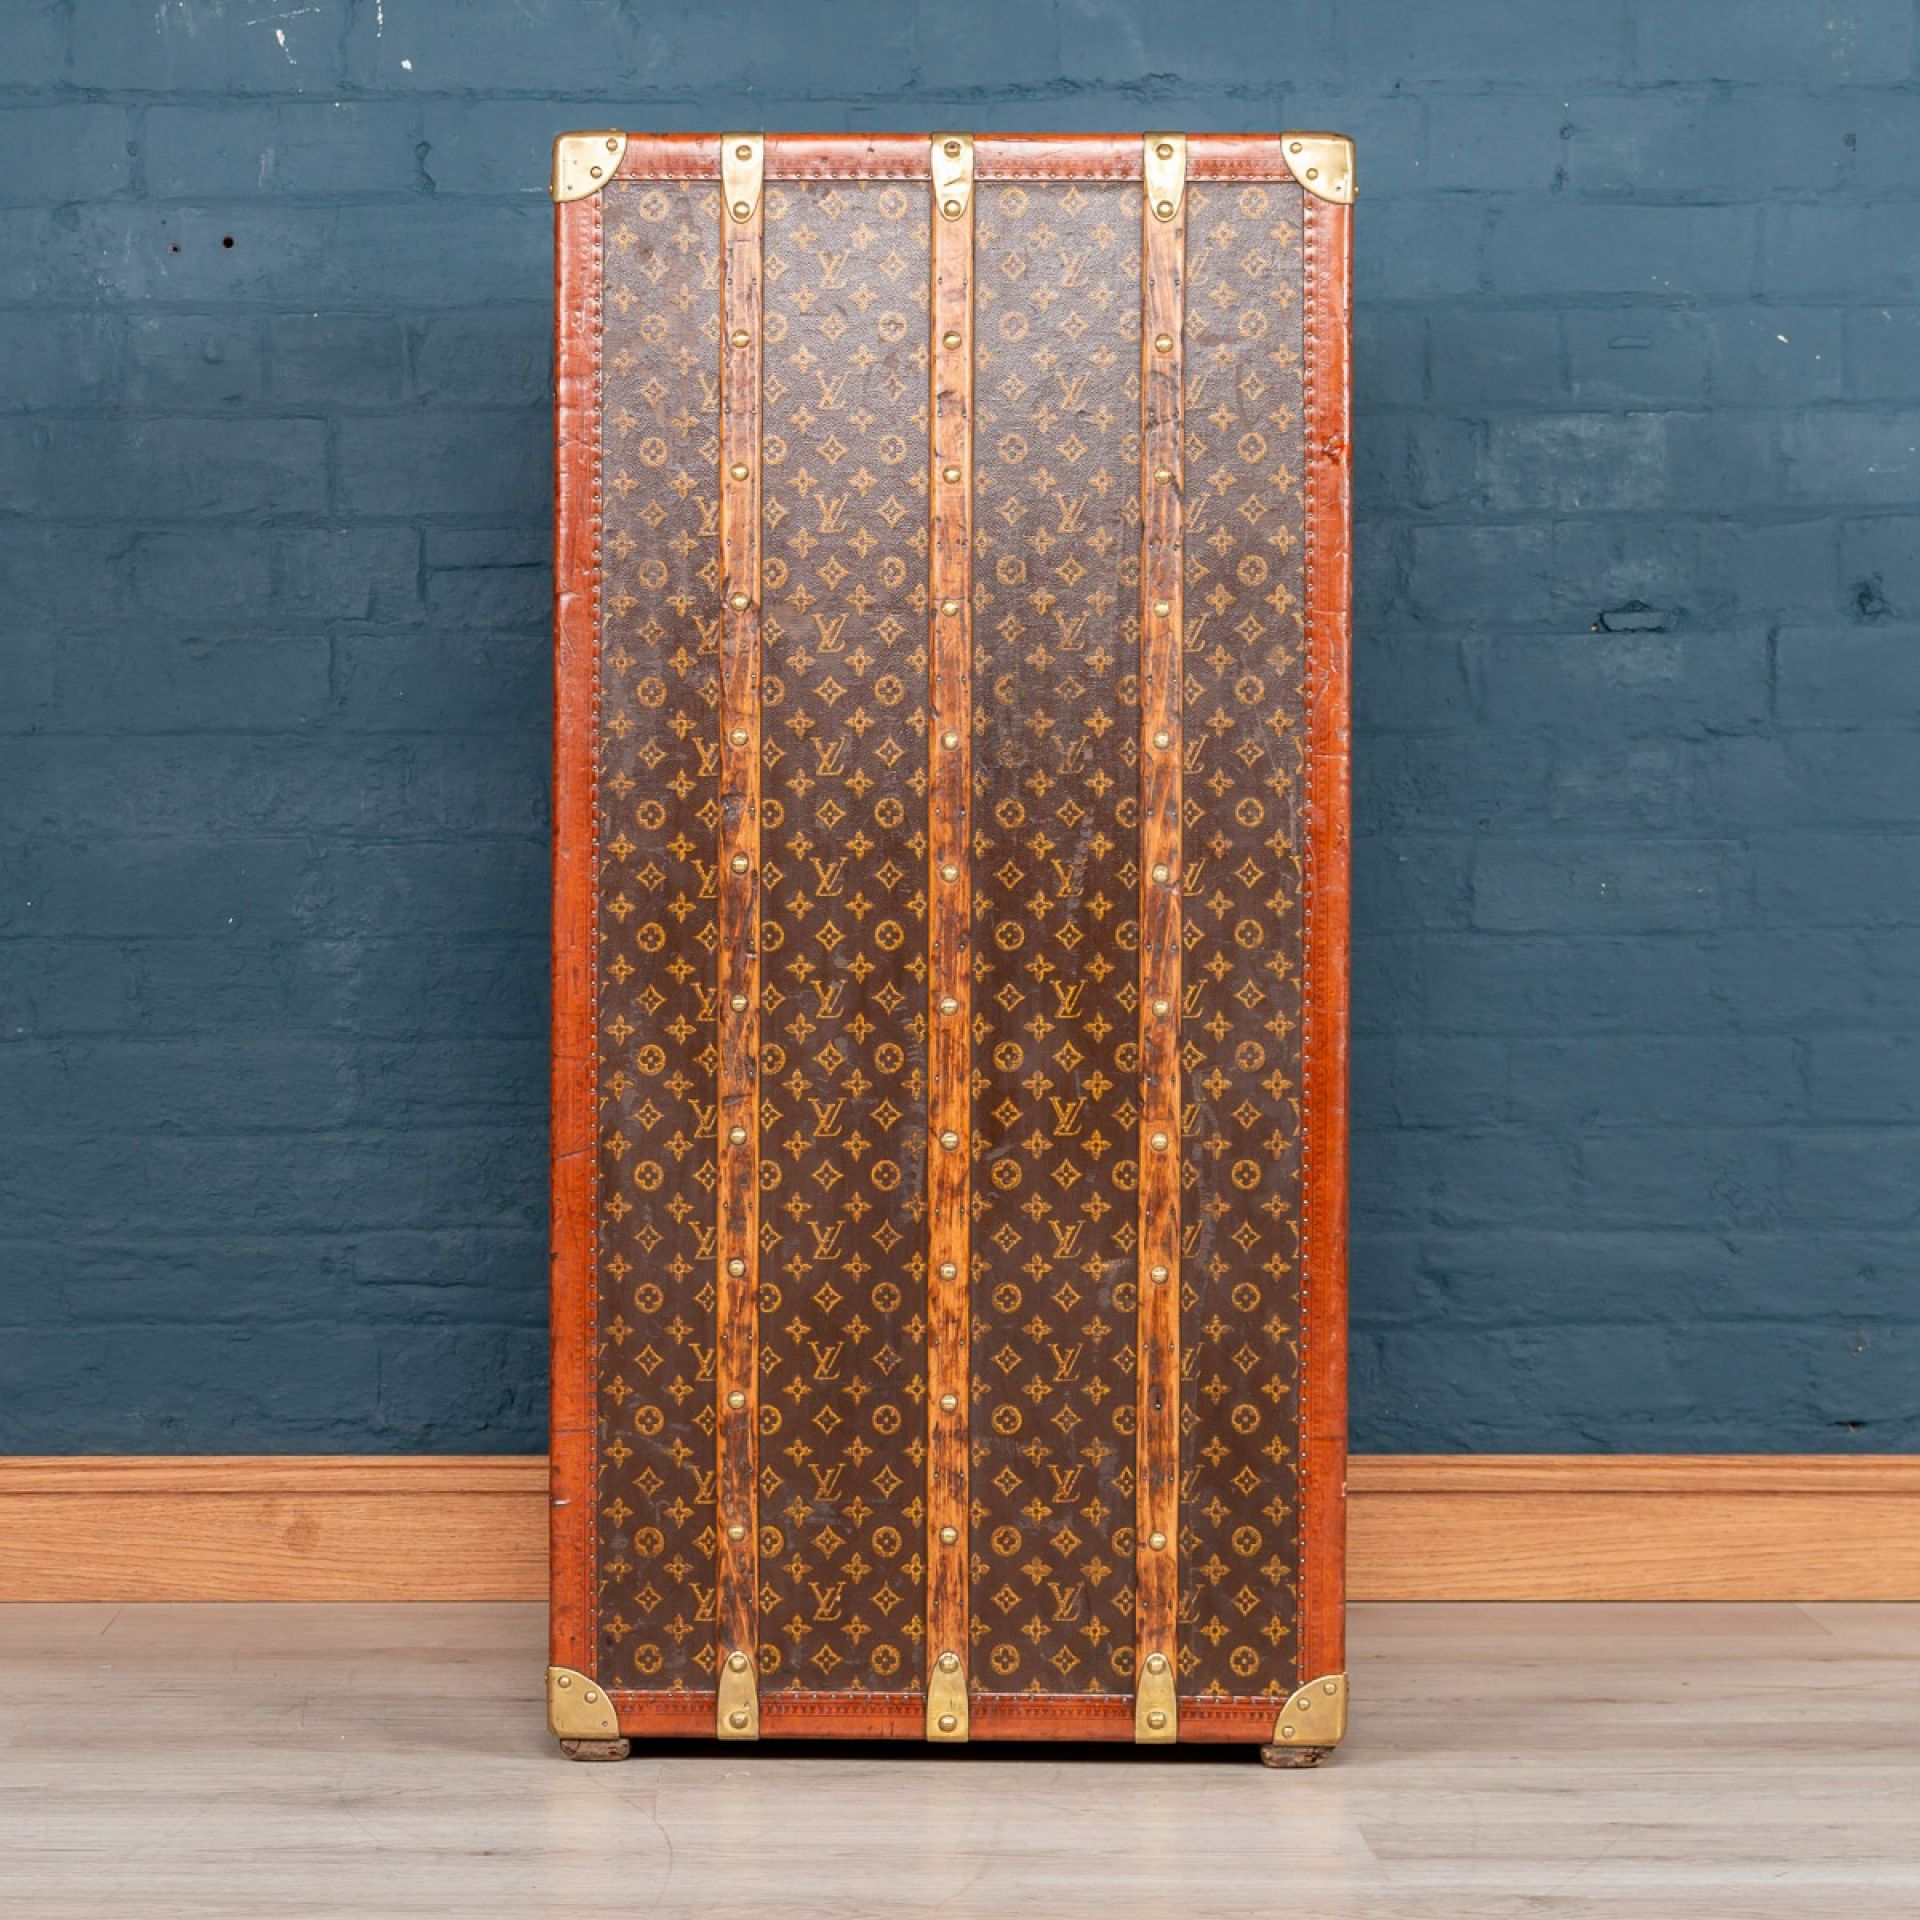 ANTIQUE 20THC LOUIS VUITTON COCKTAIL BAR & HUMIDOR CUSTOMISED TRUNK C.1920